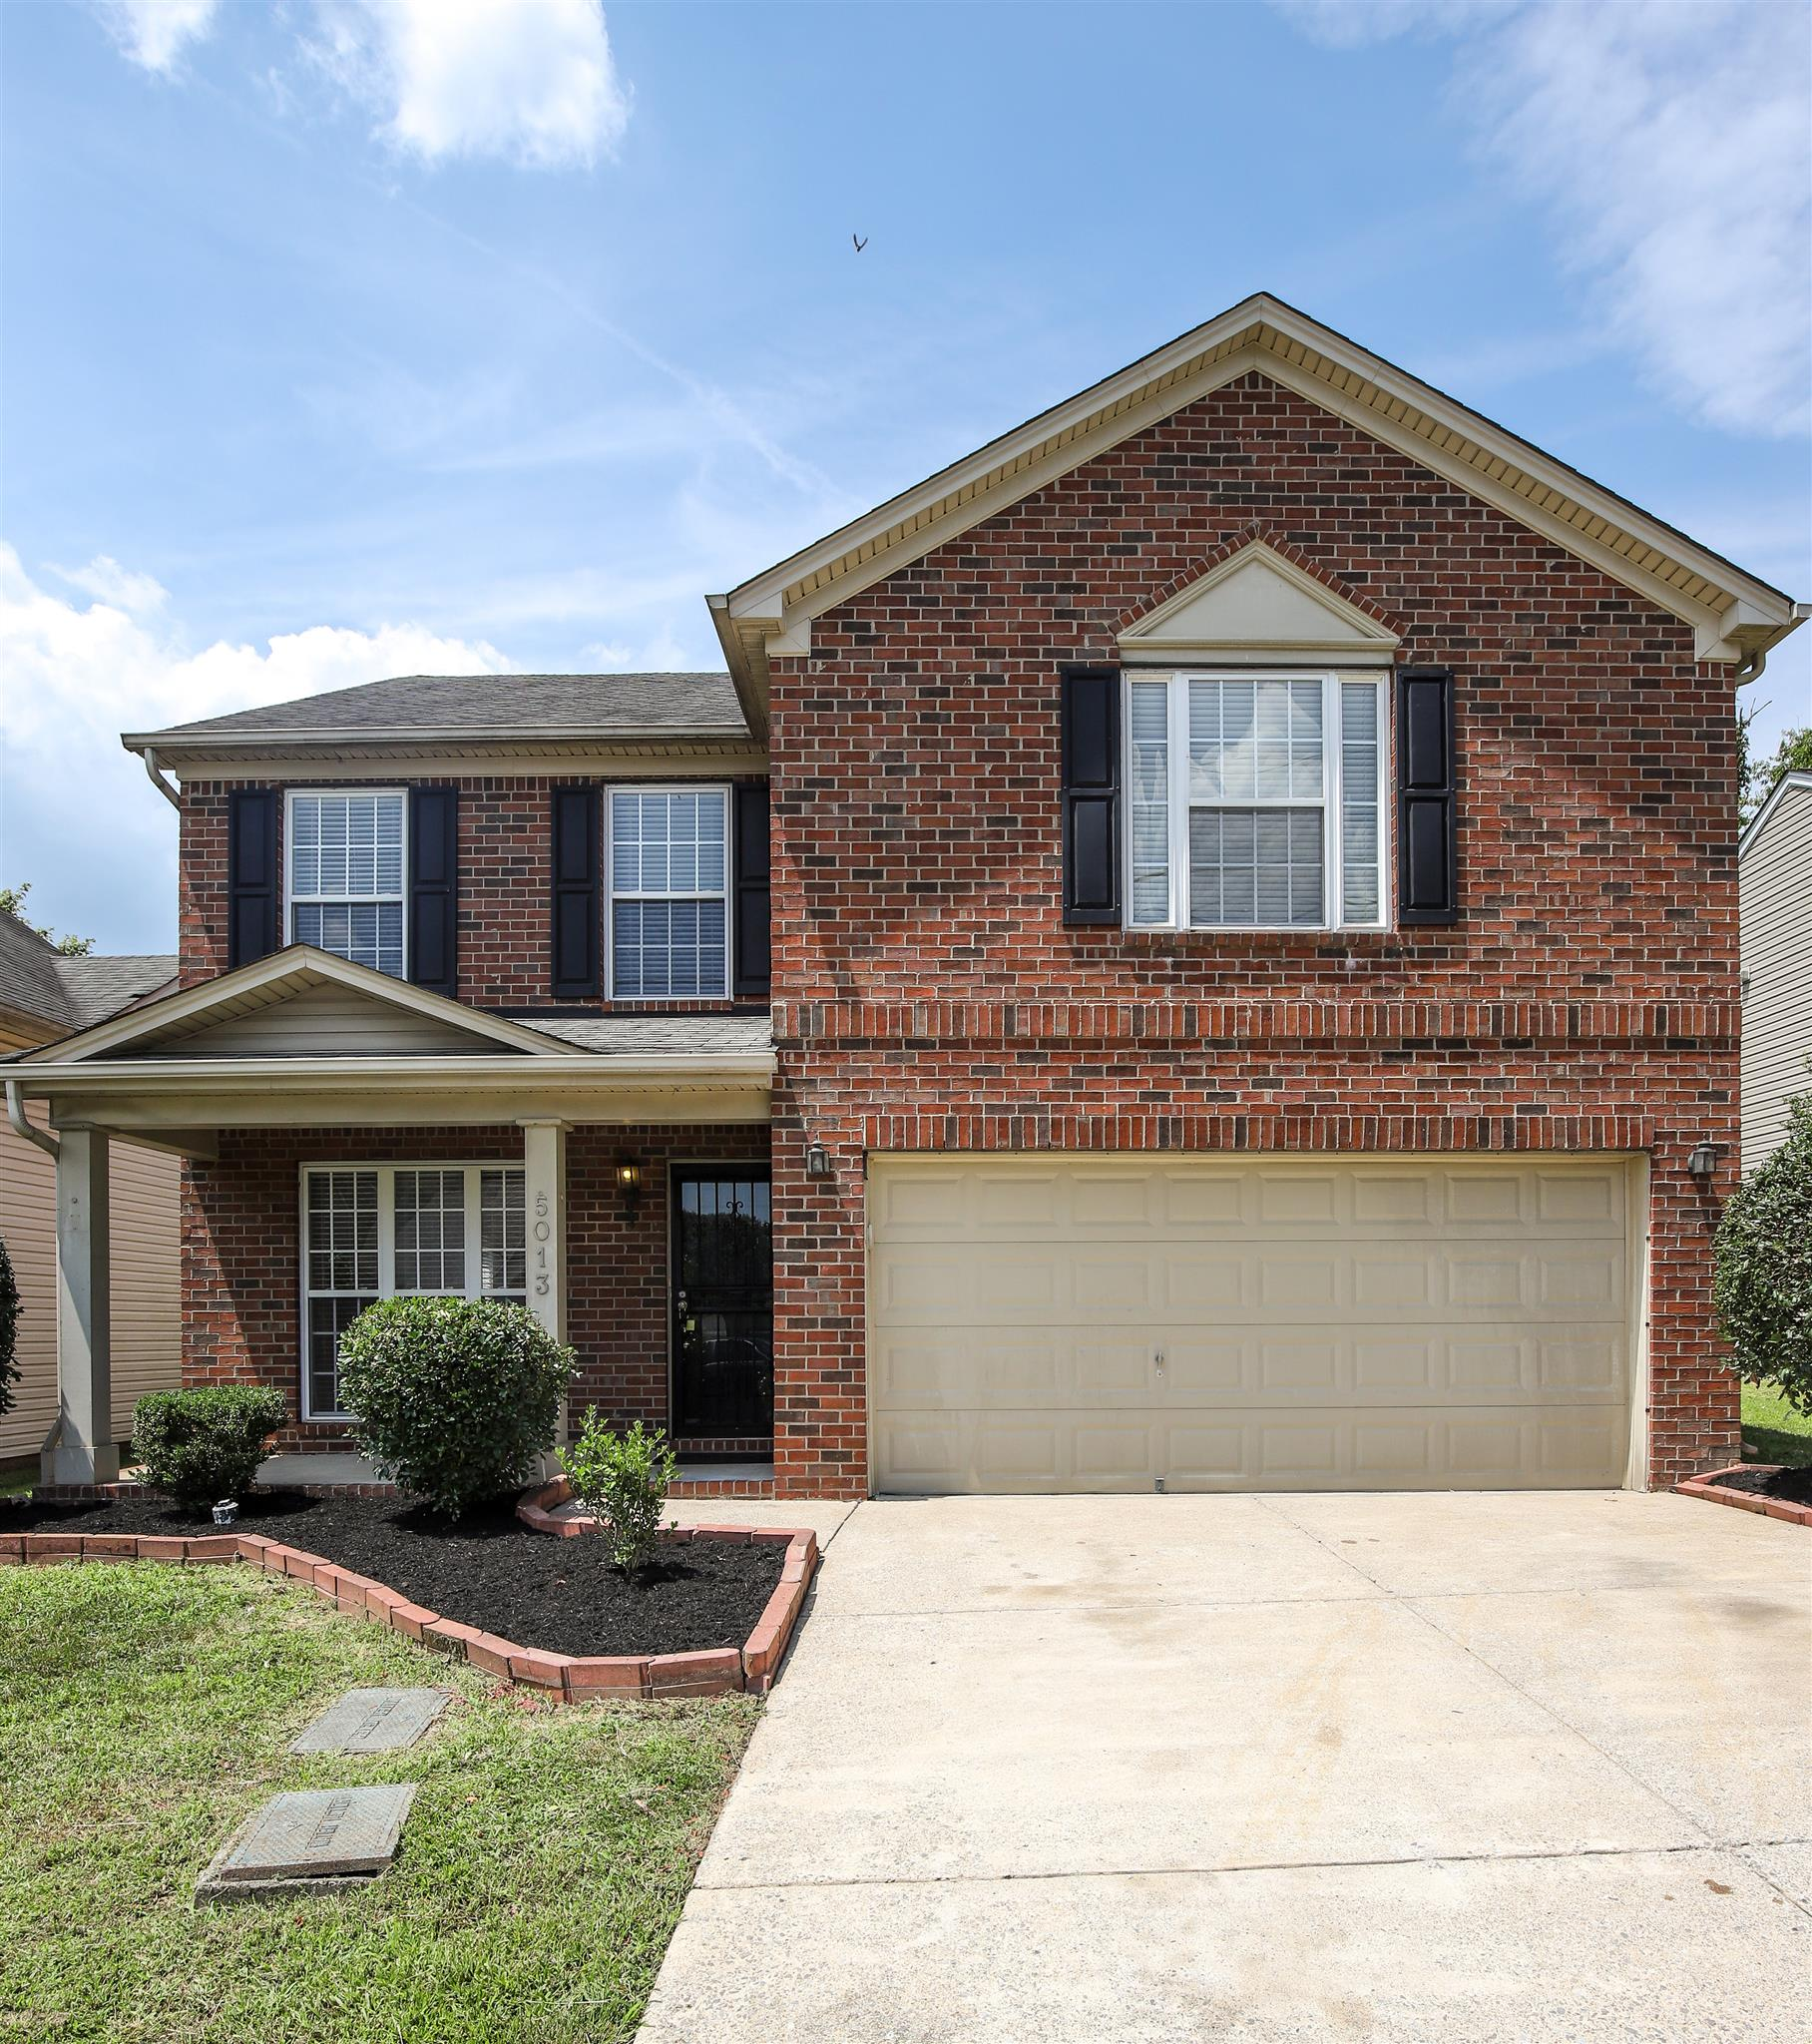 5013 Cobblestone Creek Dr, Whites Creek, TN 37189 - Whites Creek, TN real estate listing